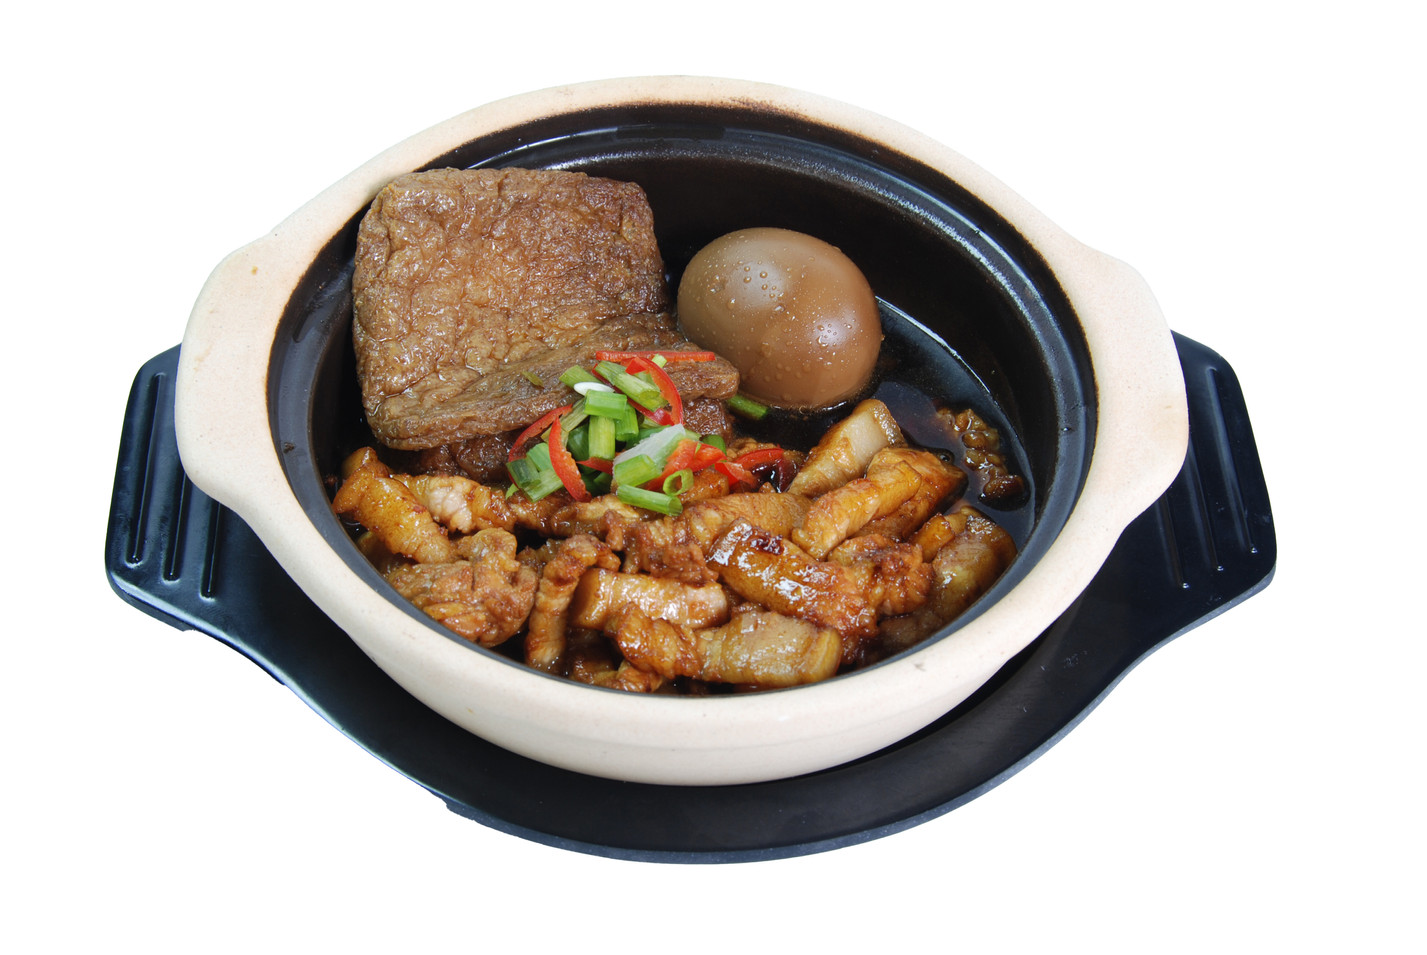 Claypot Three Braised Rice 砂煲三味饭